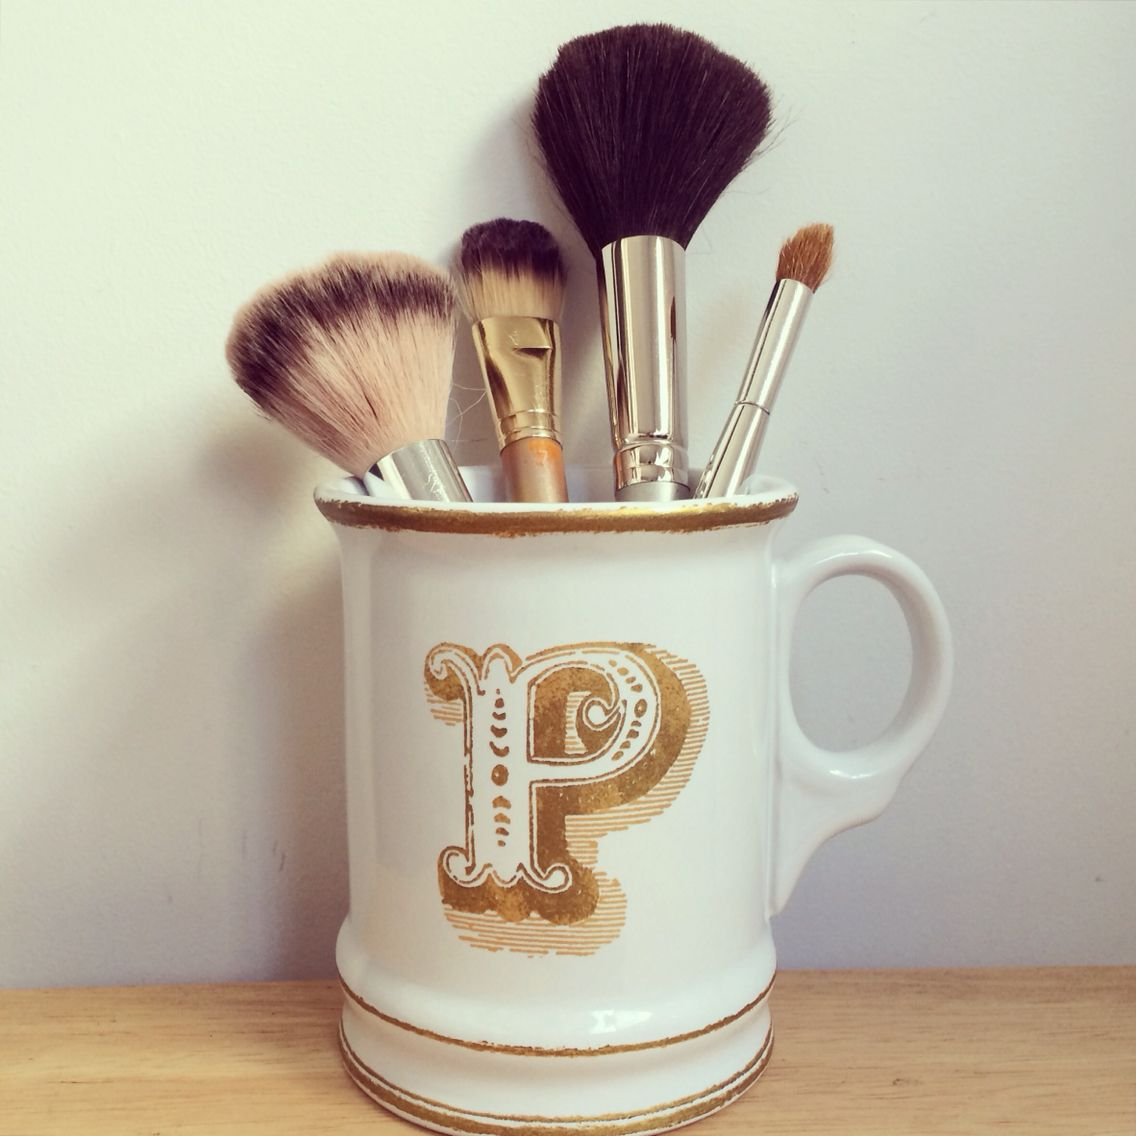 How often do you clean your makeup brushes? In general